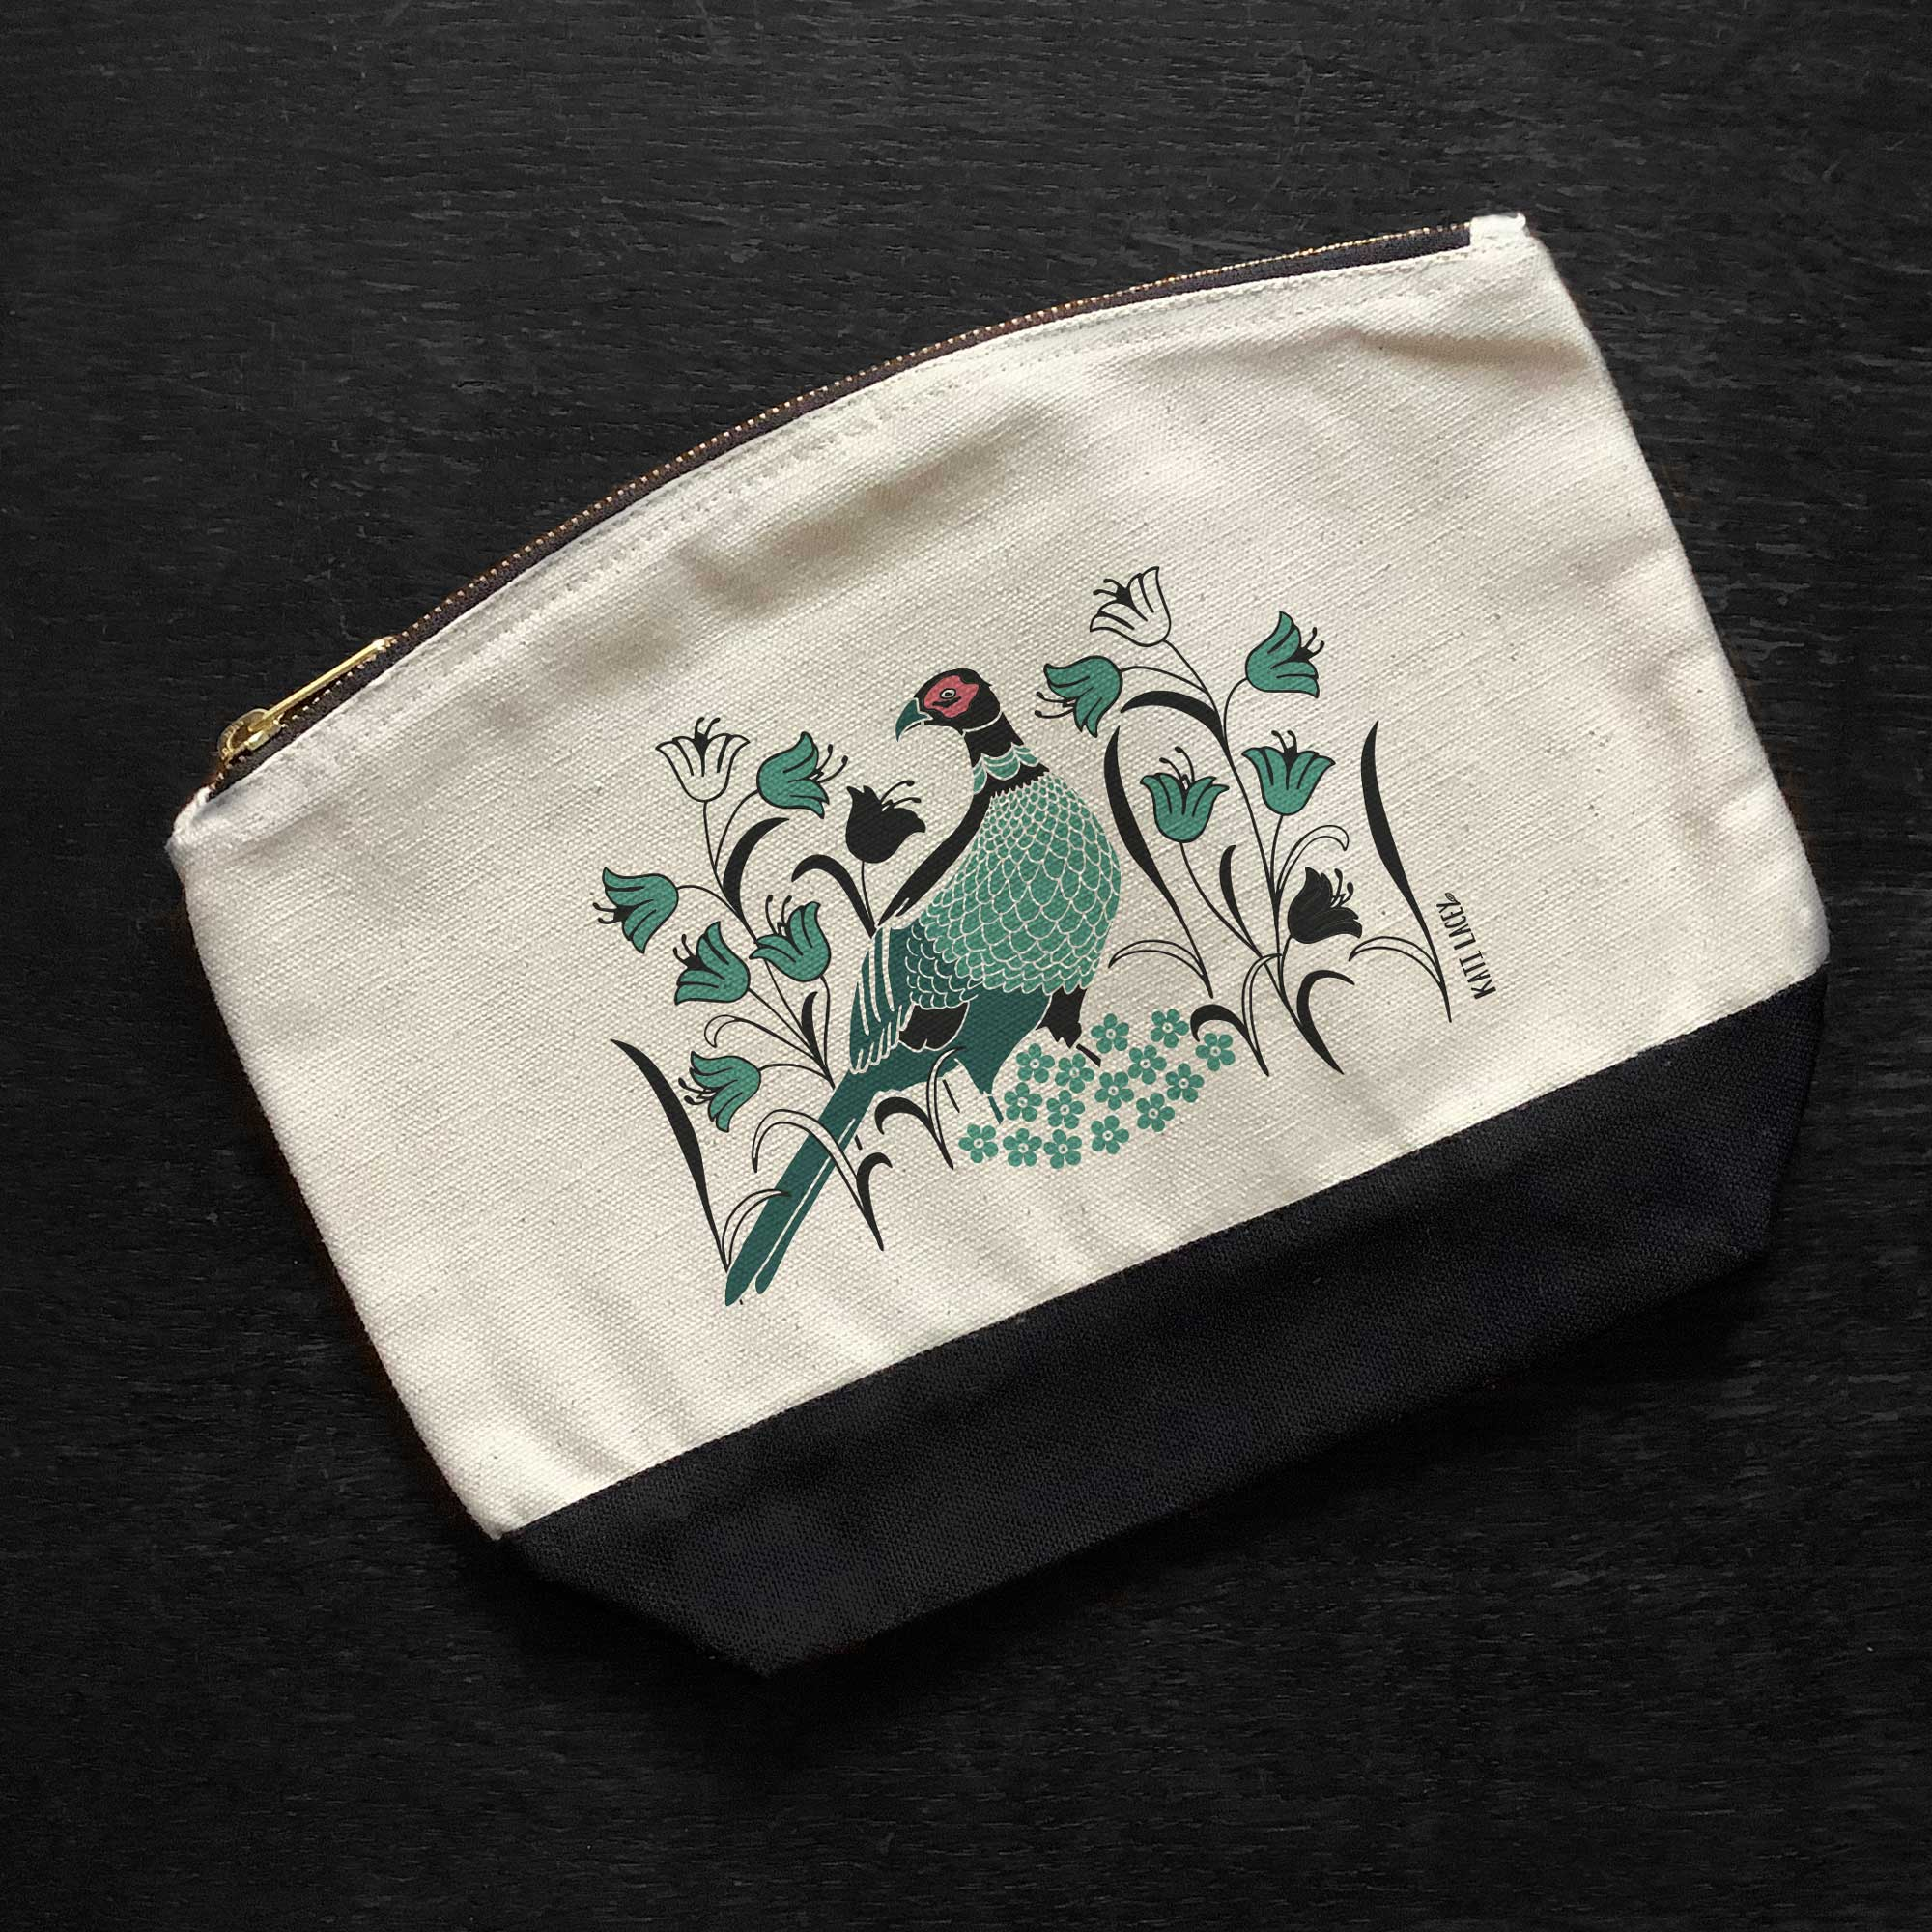 Pheasant on pouch-washbag-toiletry bag-pencil case-make up bag-storage bag for travel-medication bag-luxury